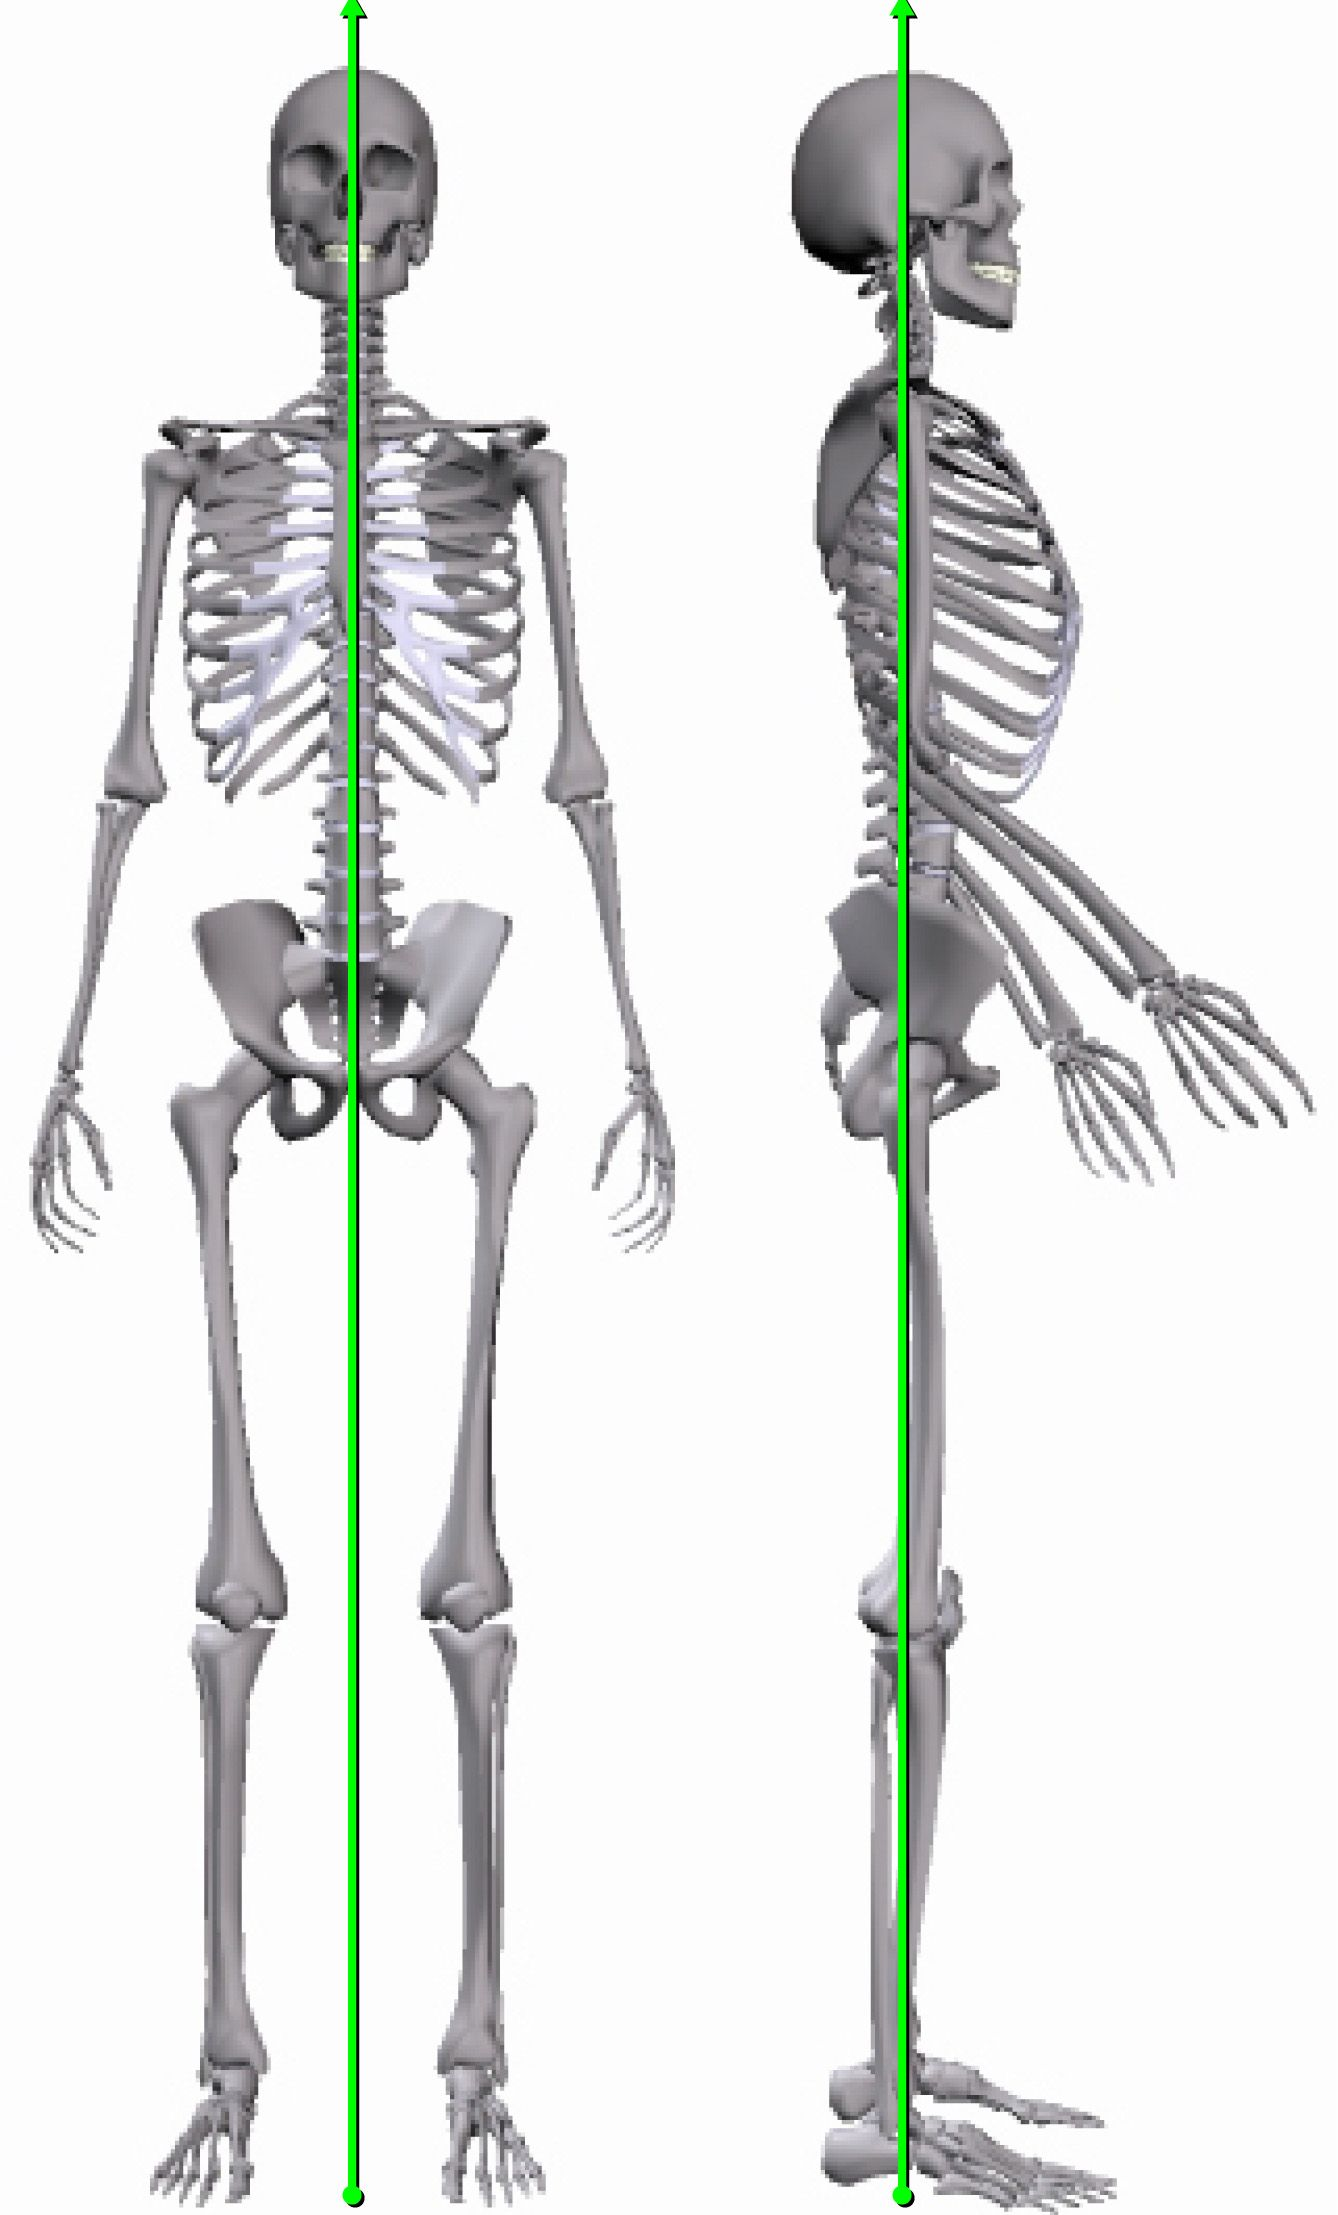 postural analysis is a window to your spine that allows us to treat you more specifically